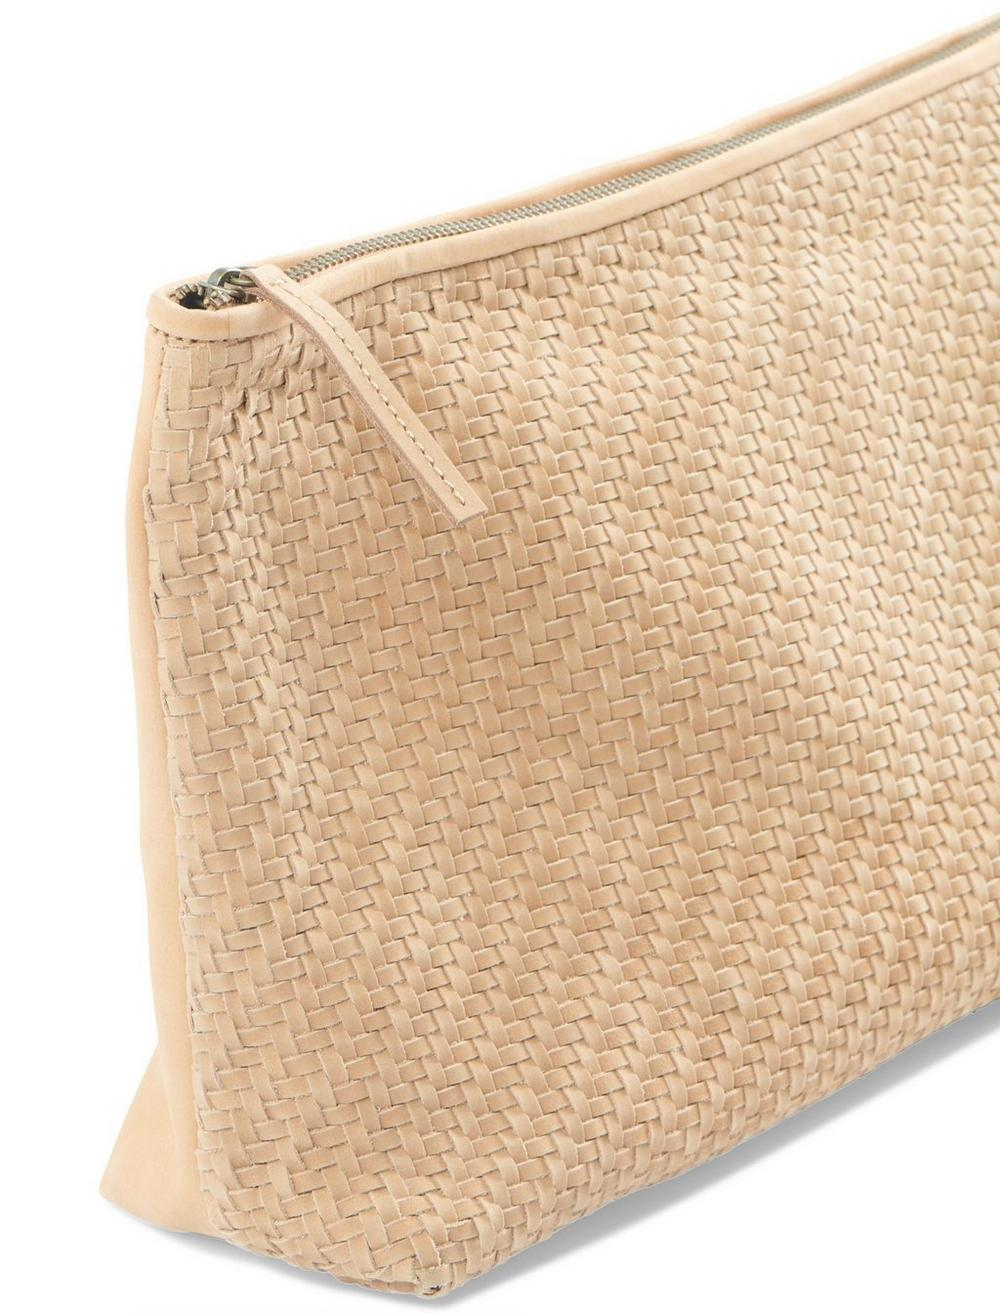 WOVEN LEATHER CLUTCH, image 2